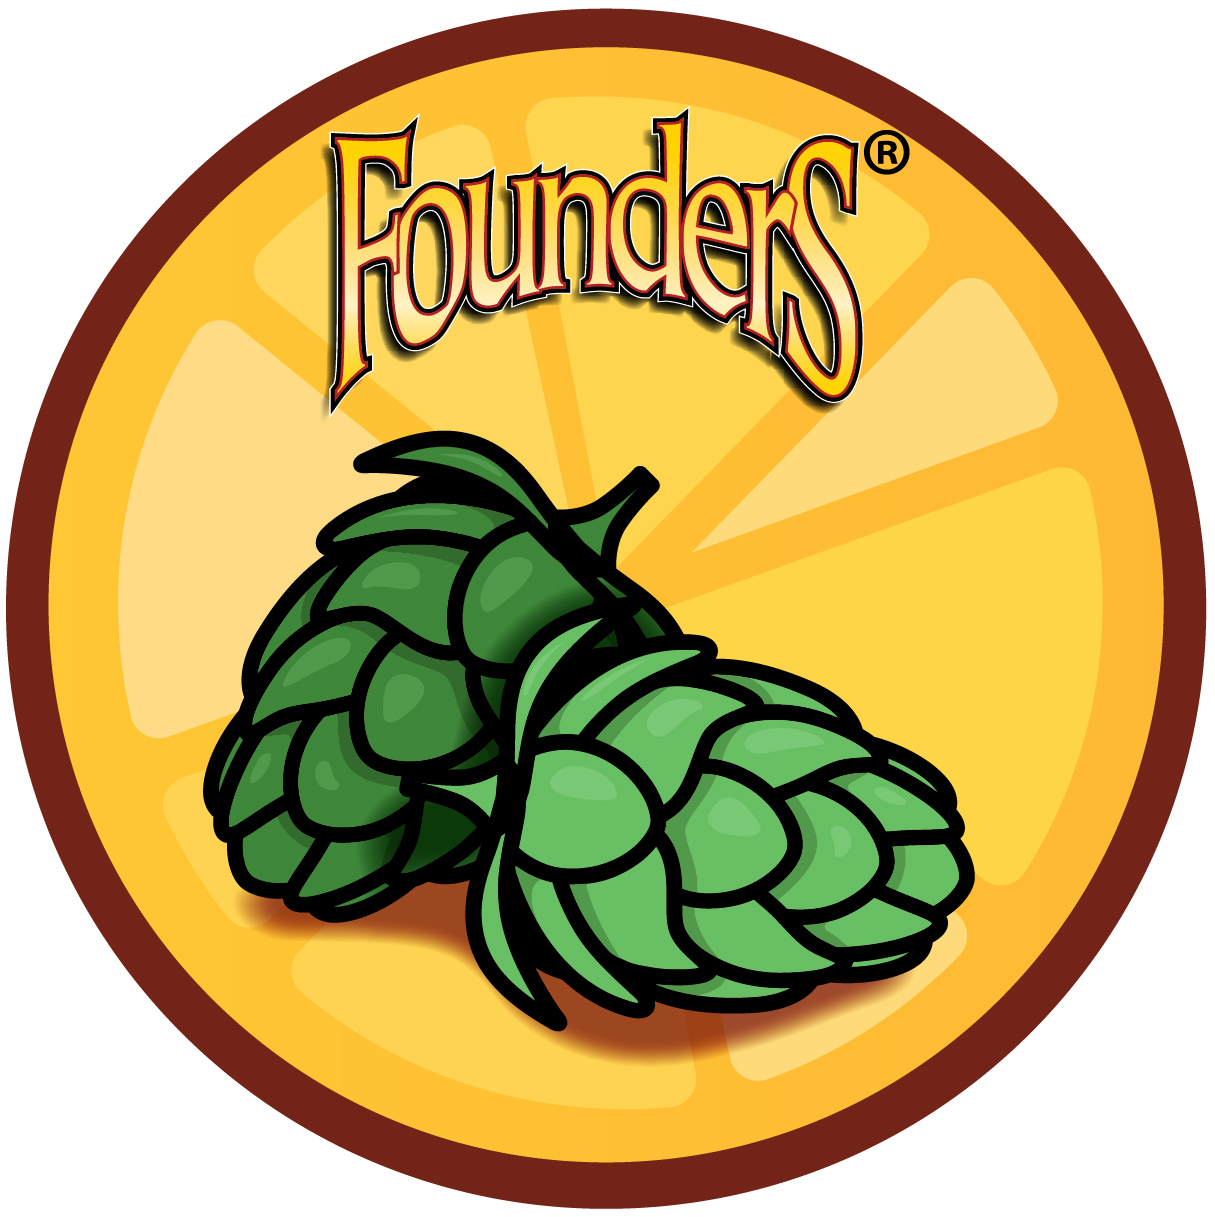 Founders Azacca badge